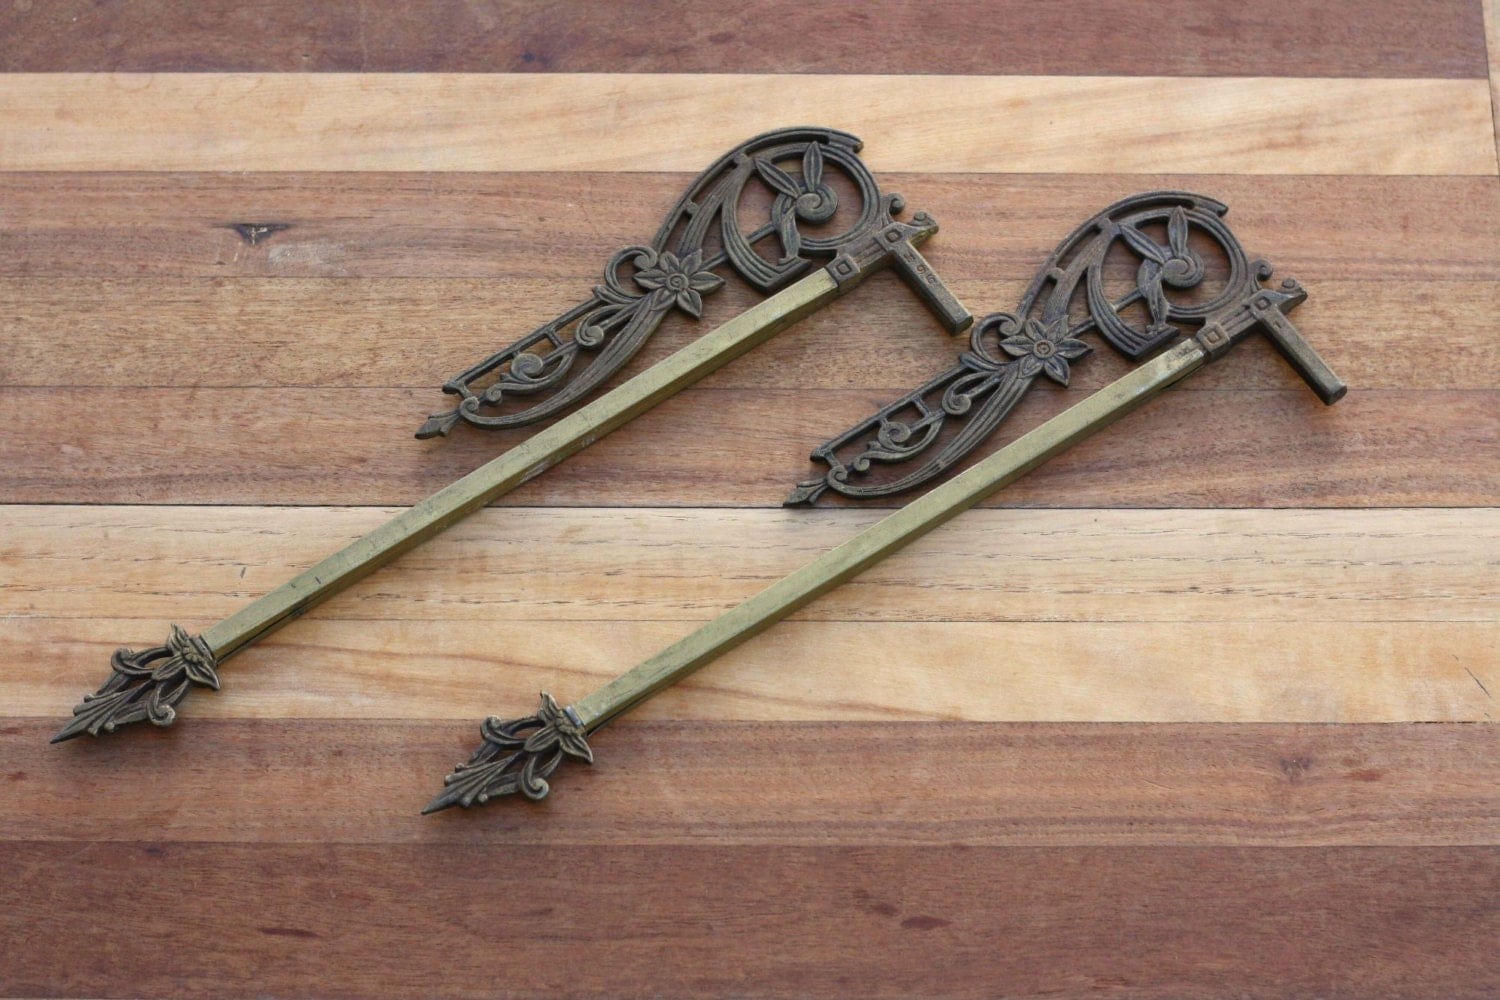 Vintage Art Deco Swing Arm Curtain Rods Adjustable Cast Iron